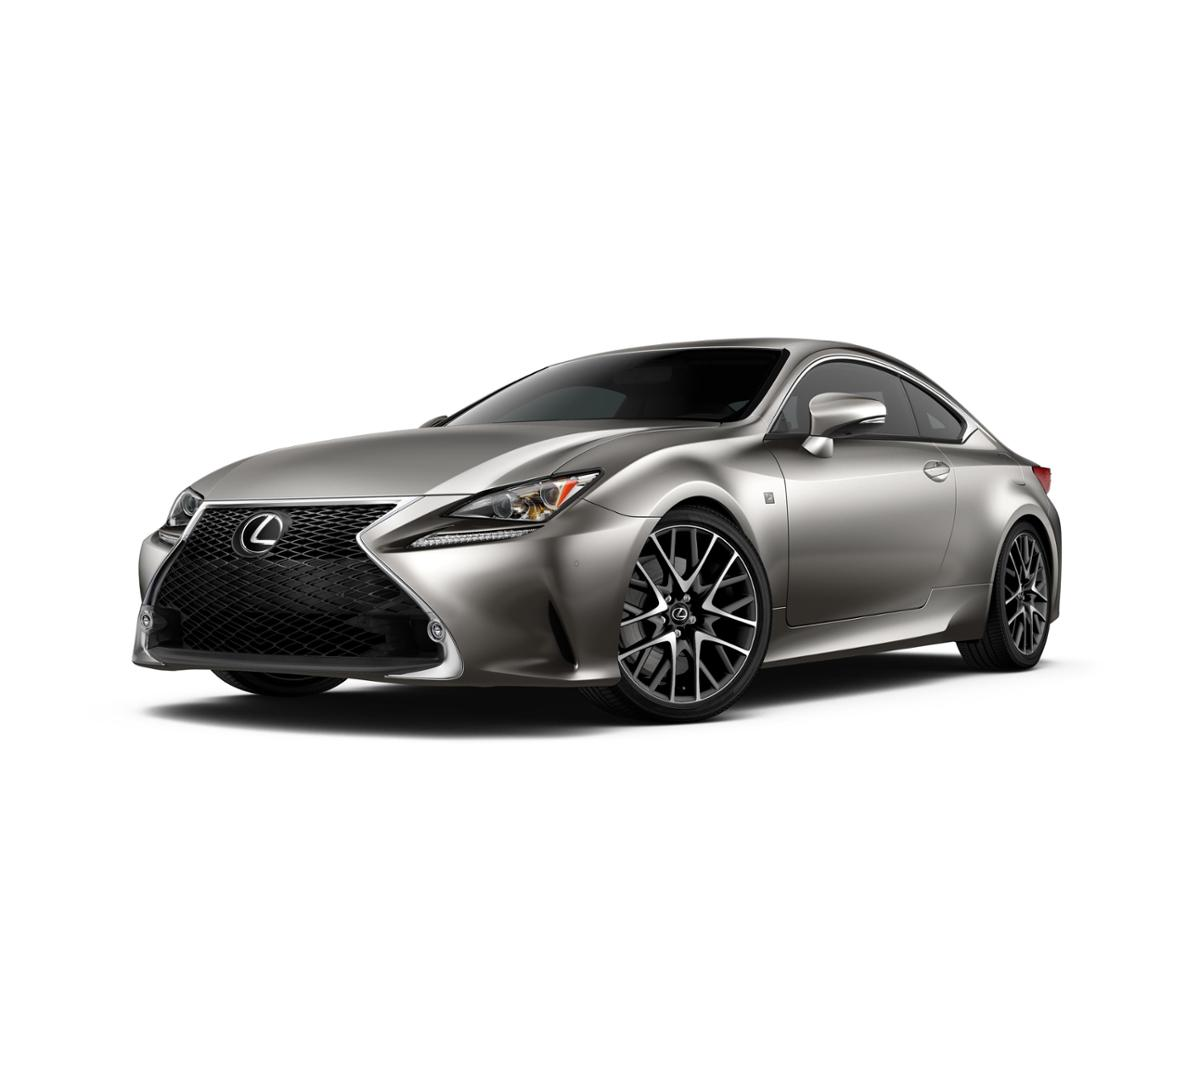 2017 Lexus RC 350 Atomic Silver Stock #45469 From Larry H